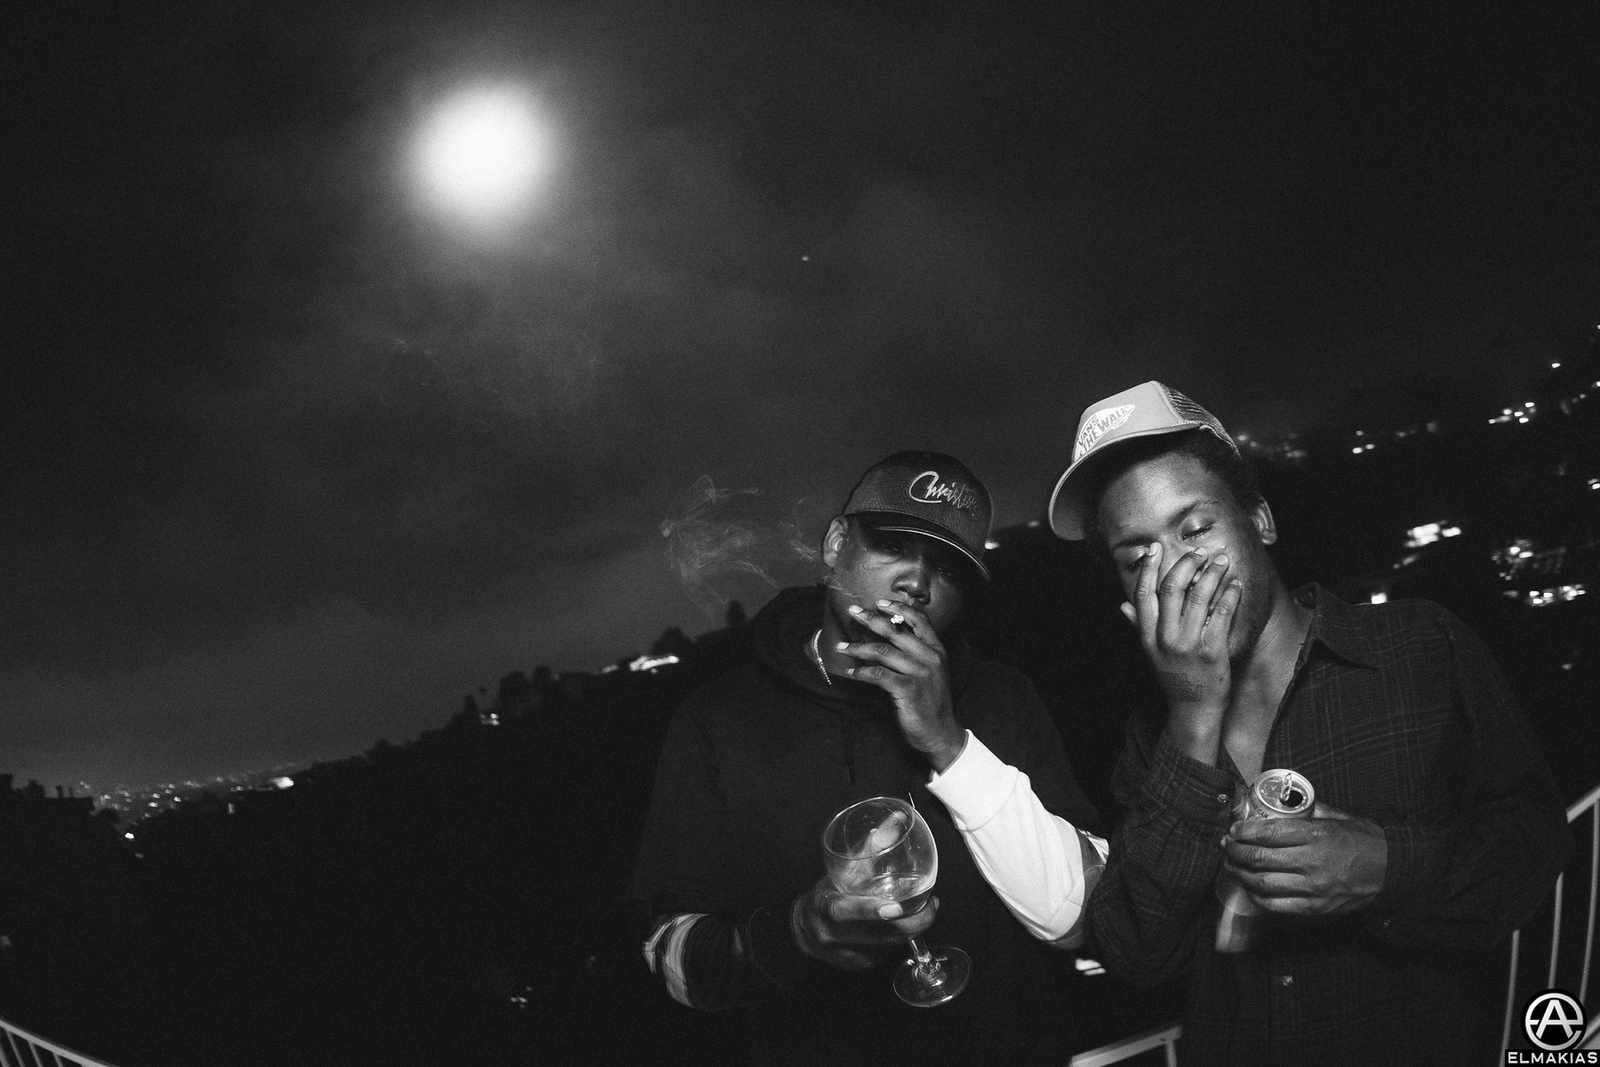 3:00am at a house in some hills with the moon - Swizzy Mac and Skizzy Mars